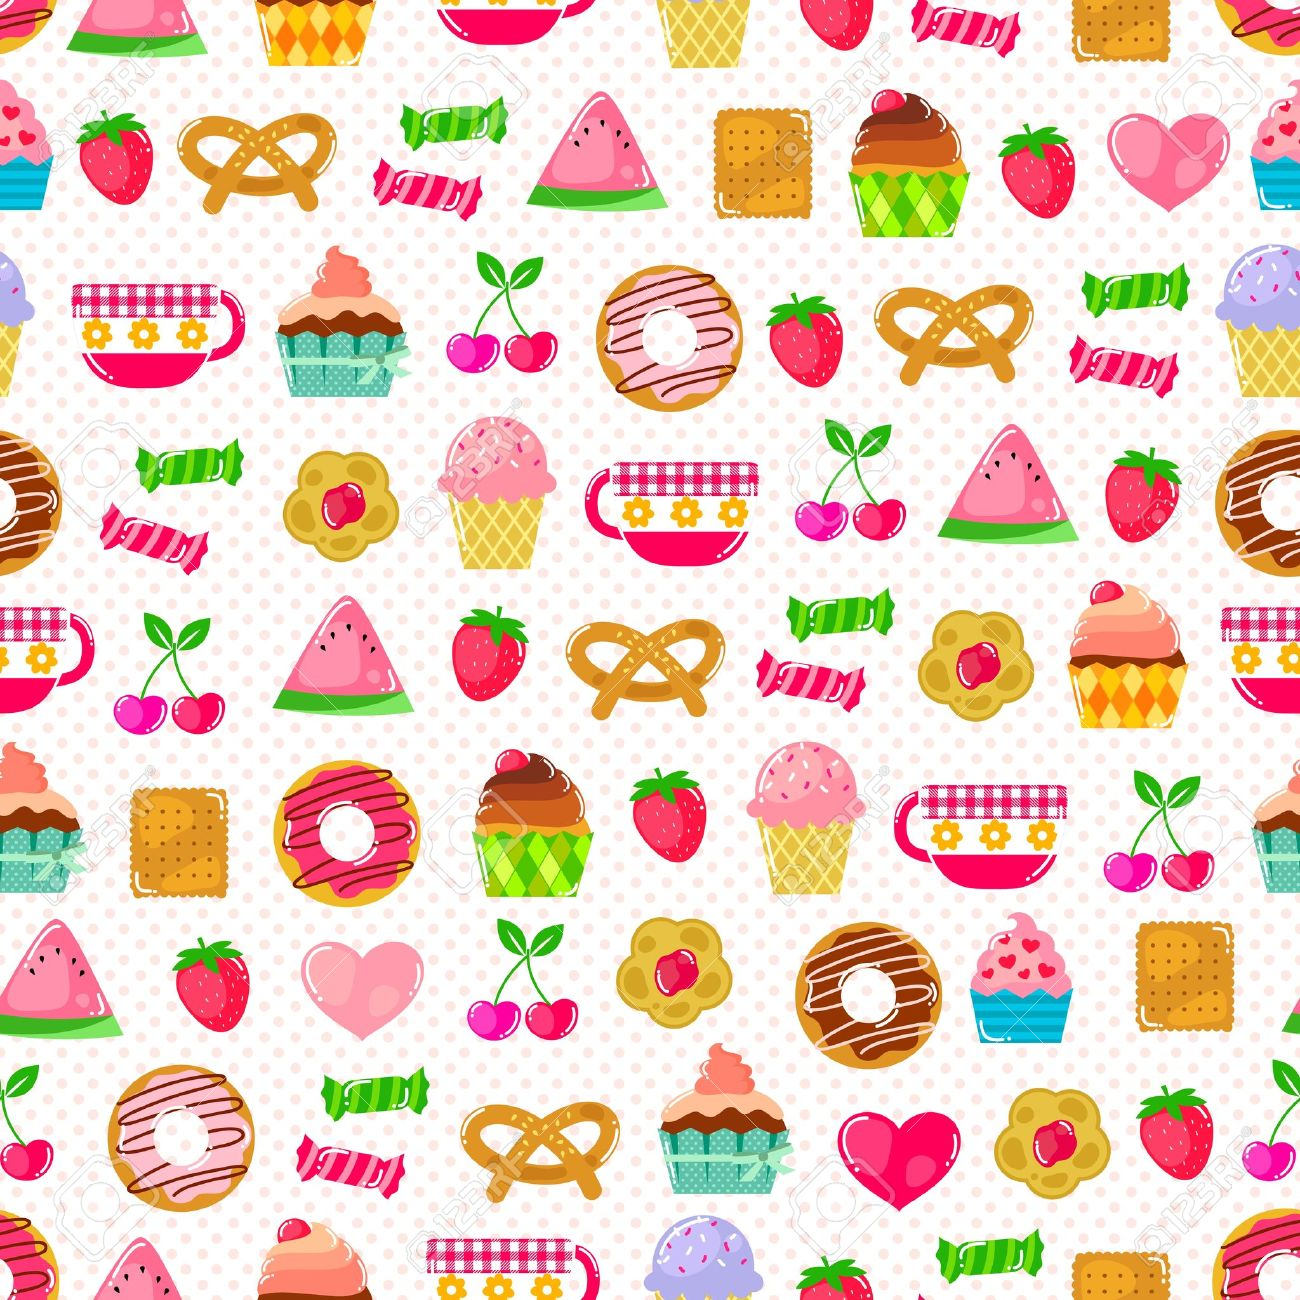 seamless pattern with sweets, fruit and other cute things  Pattern swatch included in the file Stock Vector - 18519988